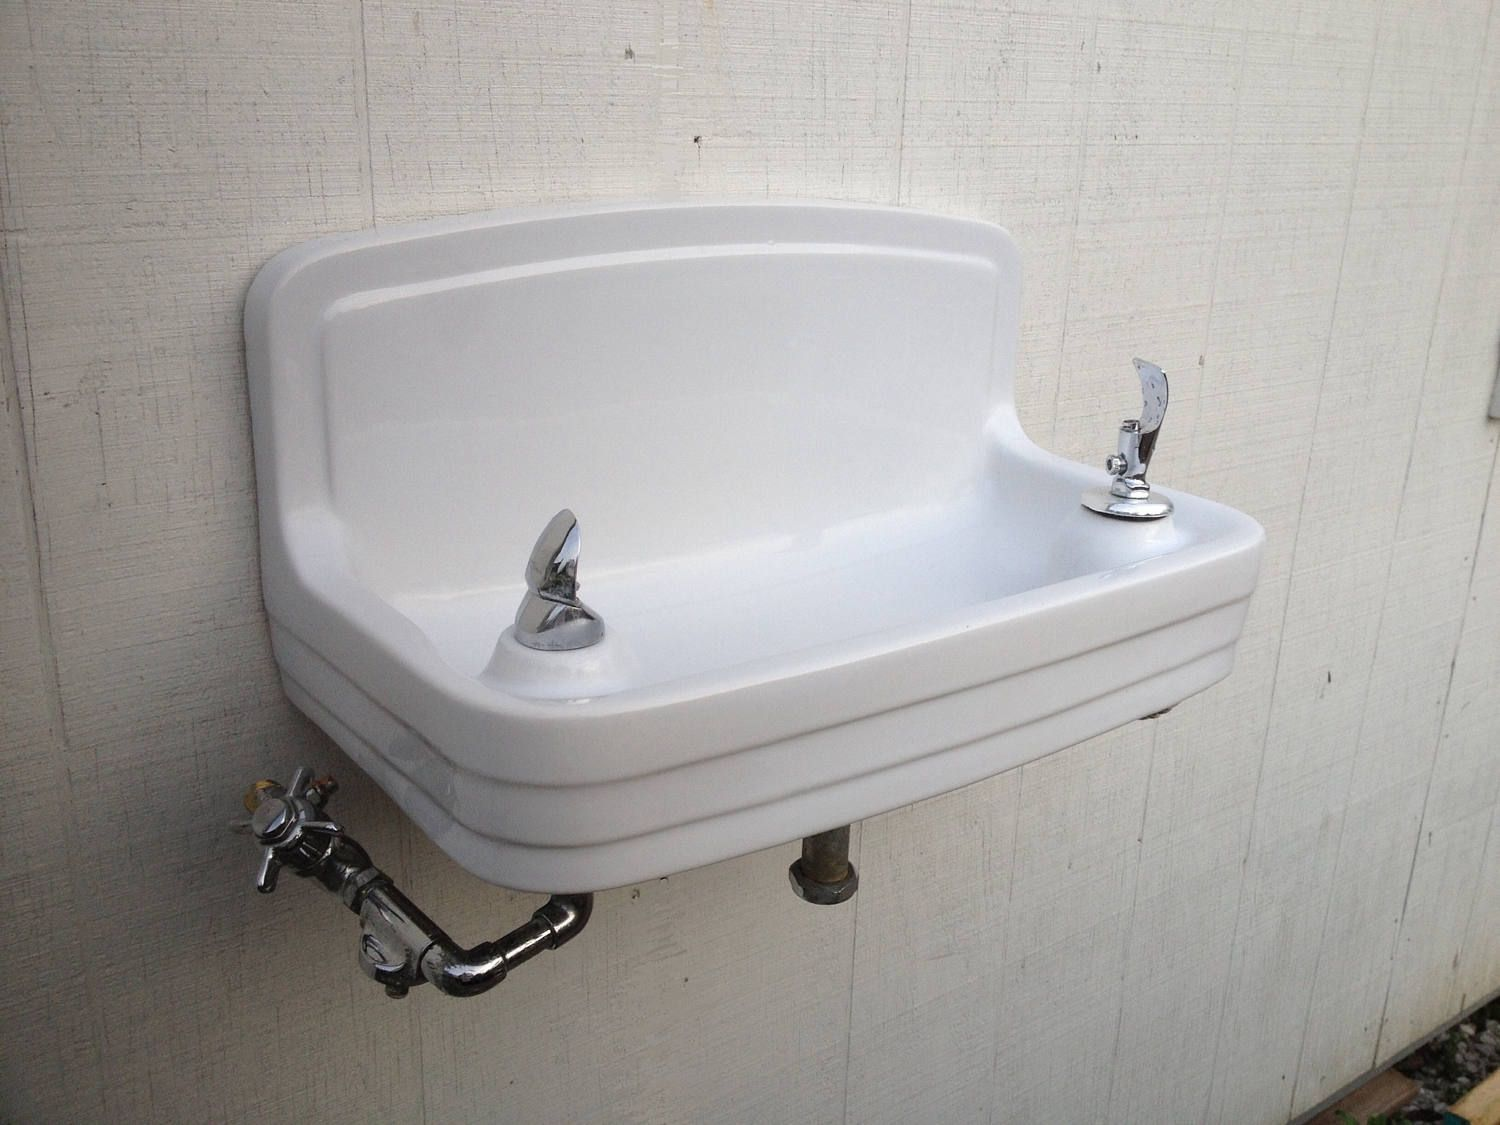 Heavy Duty Crane Porcelain Double Drinking Fountain Water Fountain With Fixtures School House Pool House Water Bubbler Ci Drinking Fountain Bubbler Pool Houses